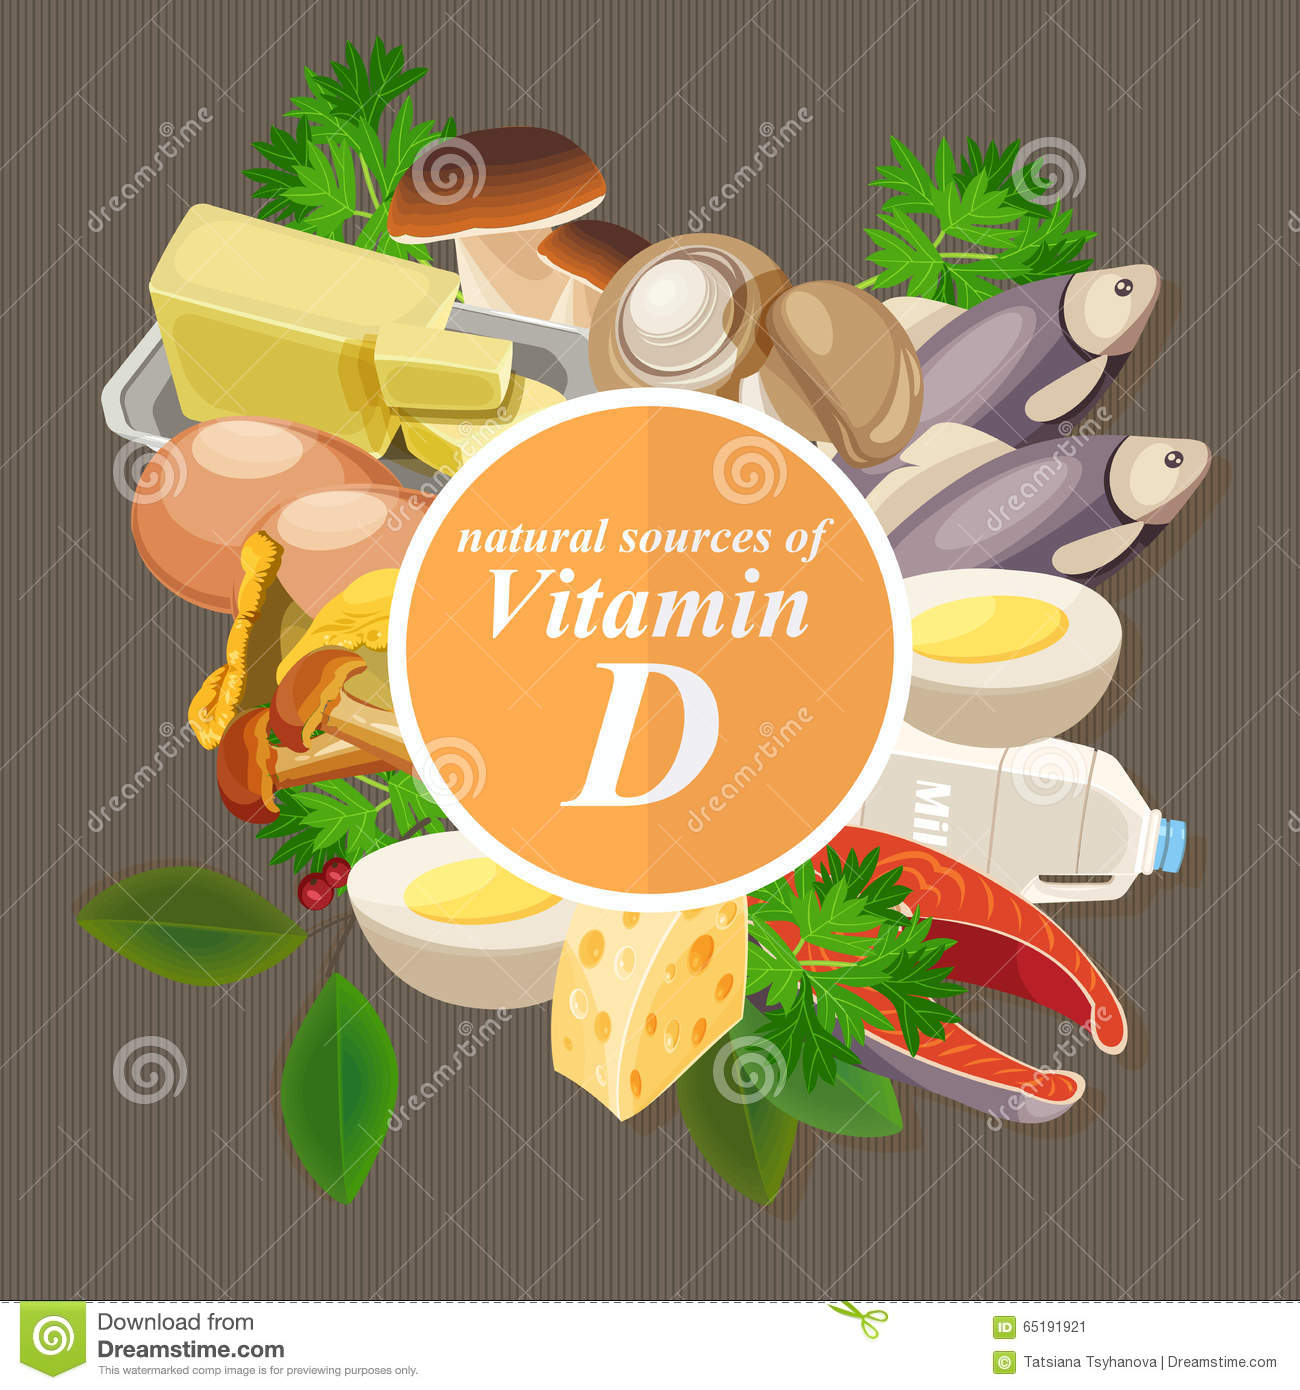 Groups of healthy fruit, vegetables, meat, fish and dairy products containing specific vitamins. Vitamin D.